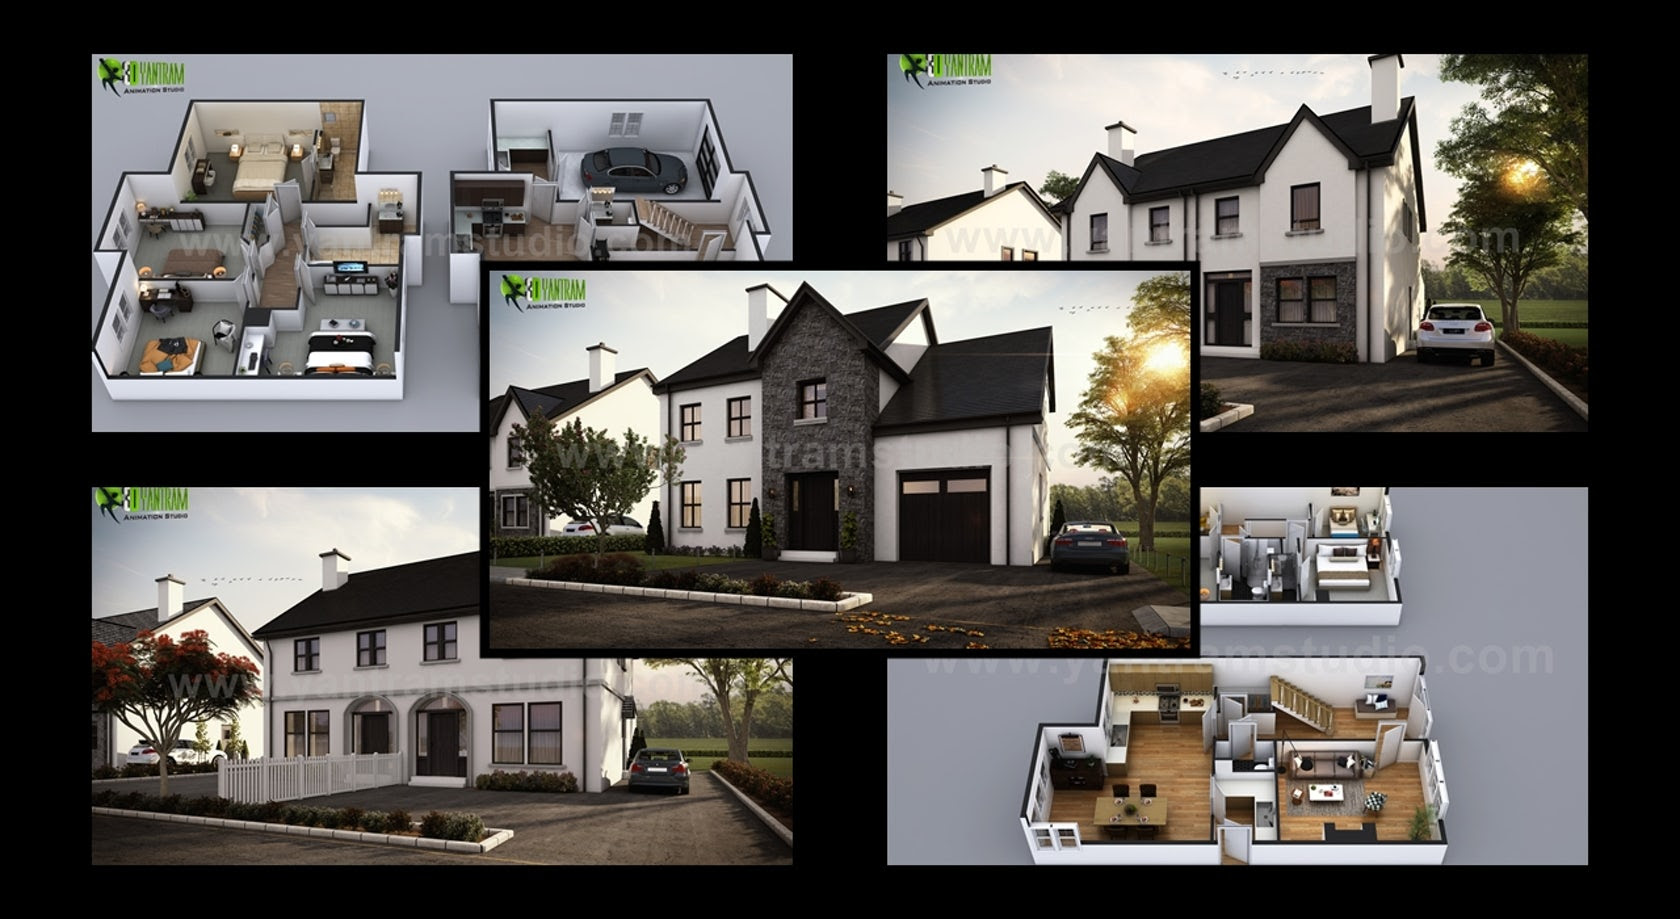 Modern Small House Design With Floor Plan Ideas In Milan Italy By Architectural Exterior Visualization Design Company Architizer